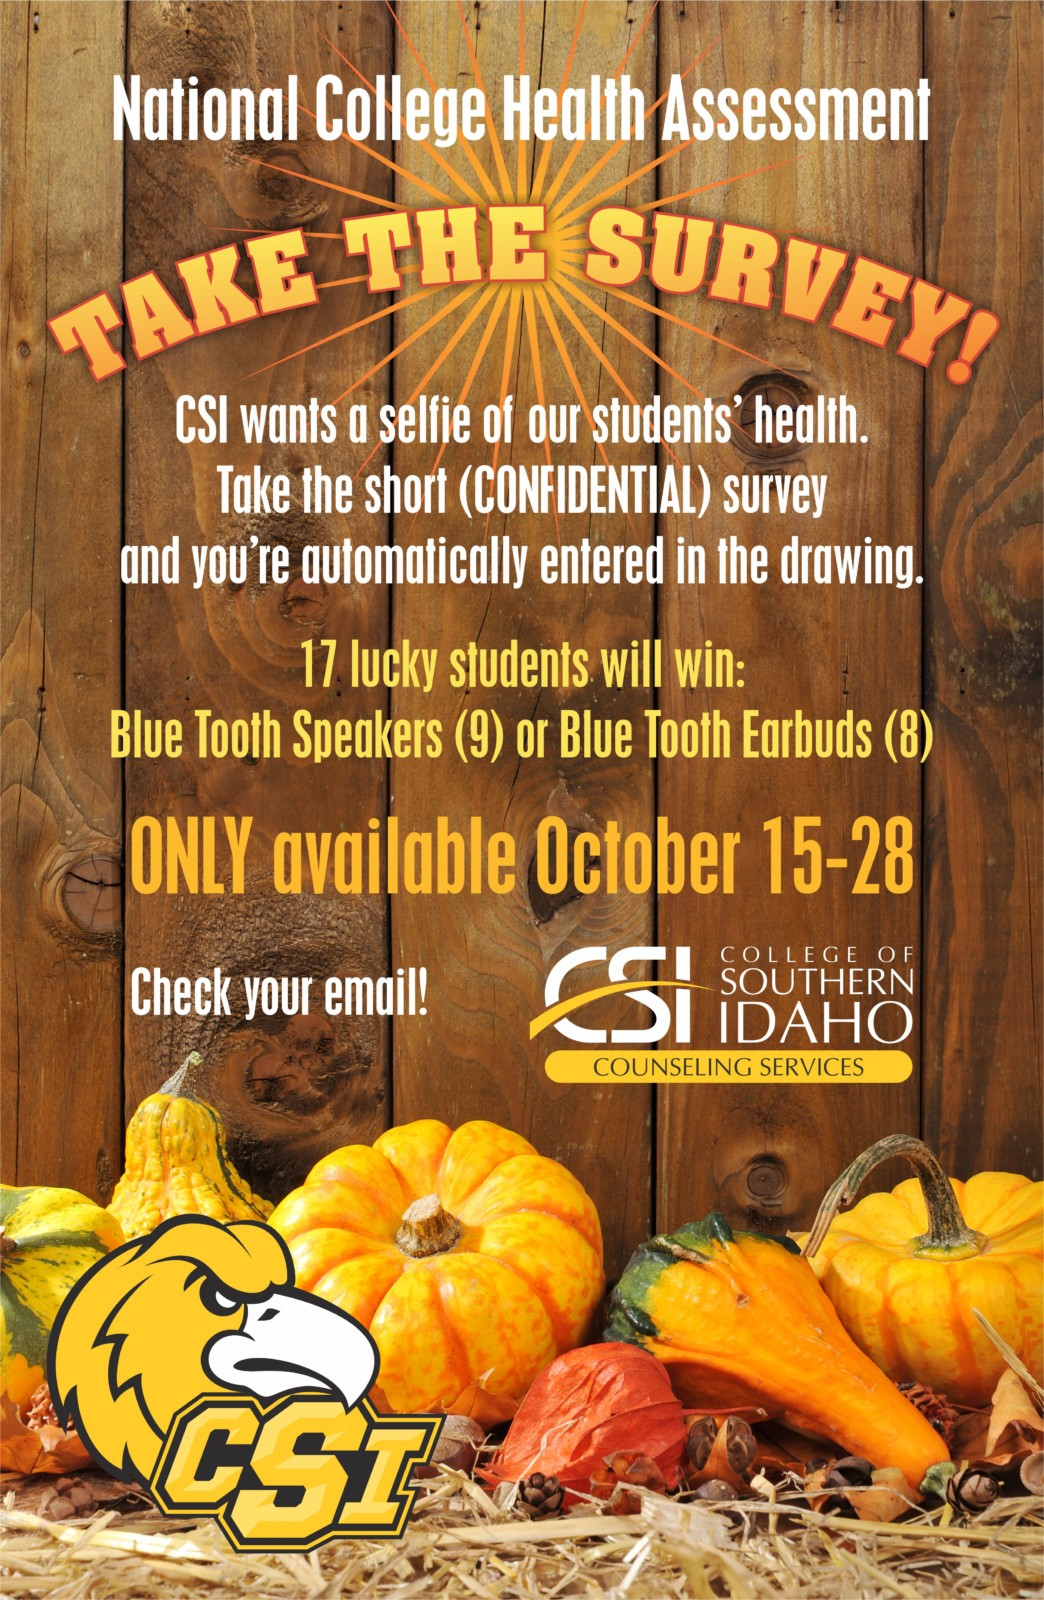 Take the CSI National College Health Association health survey and enter the drawing for 17 Blue Tooth earbuds or speakers.